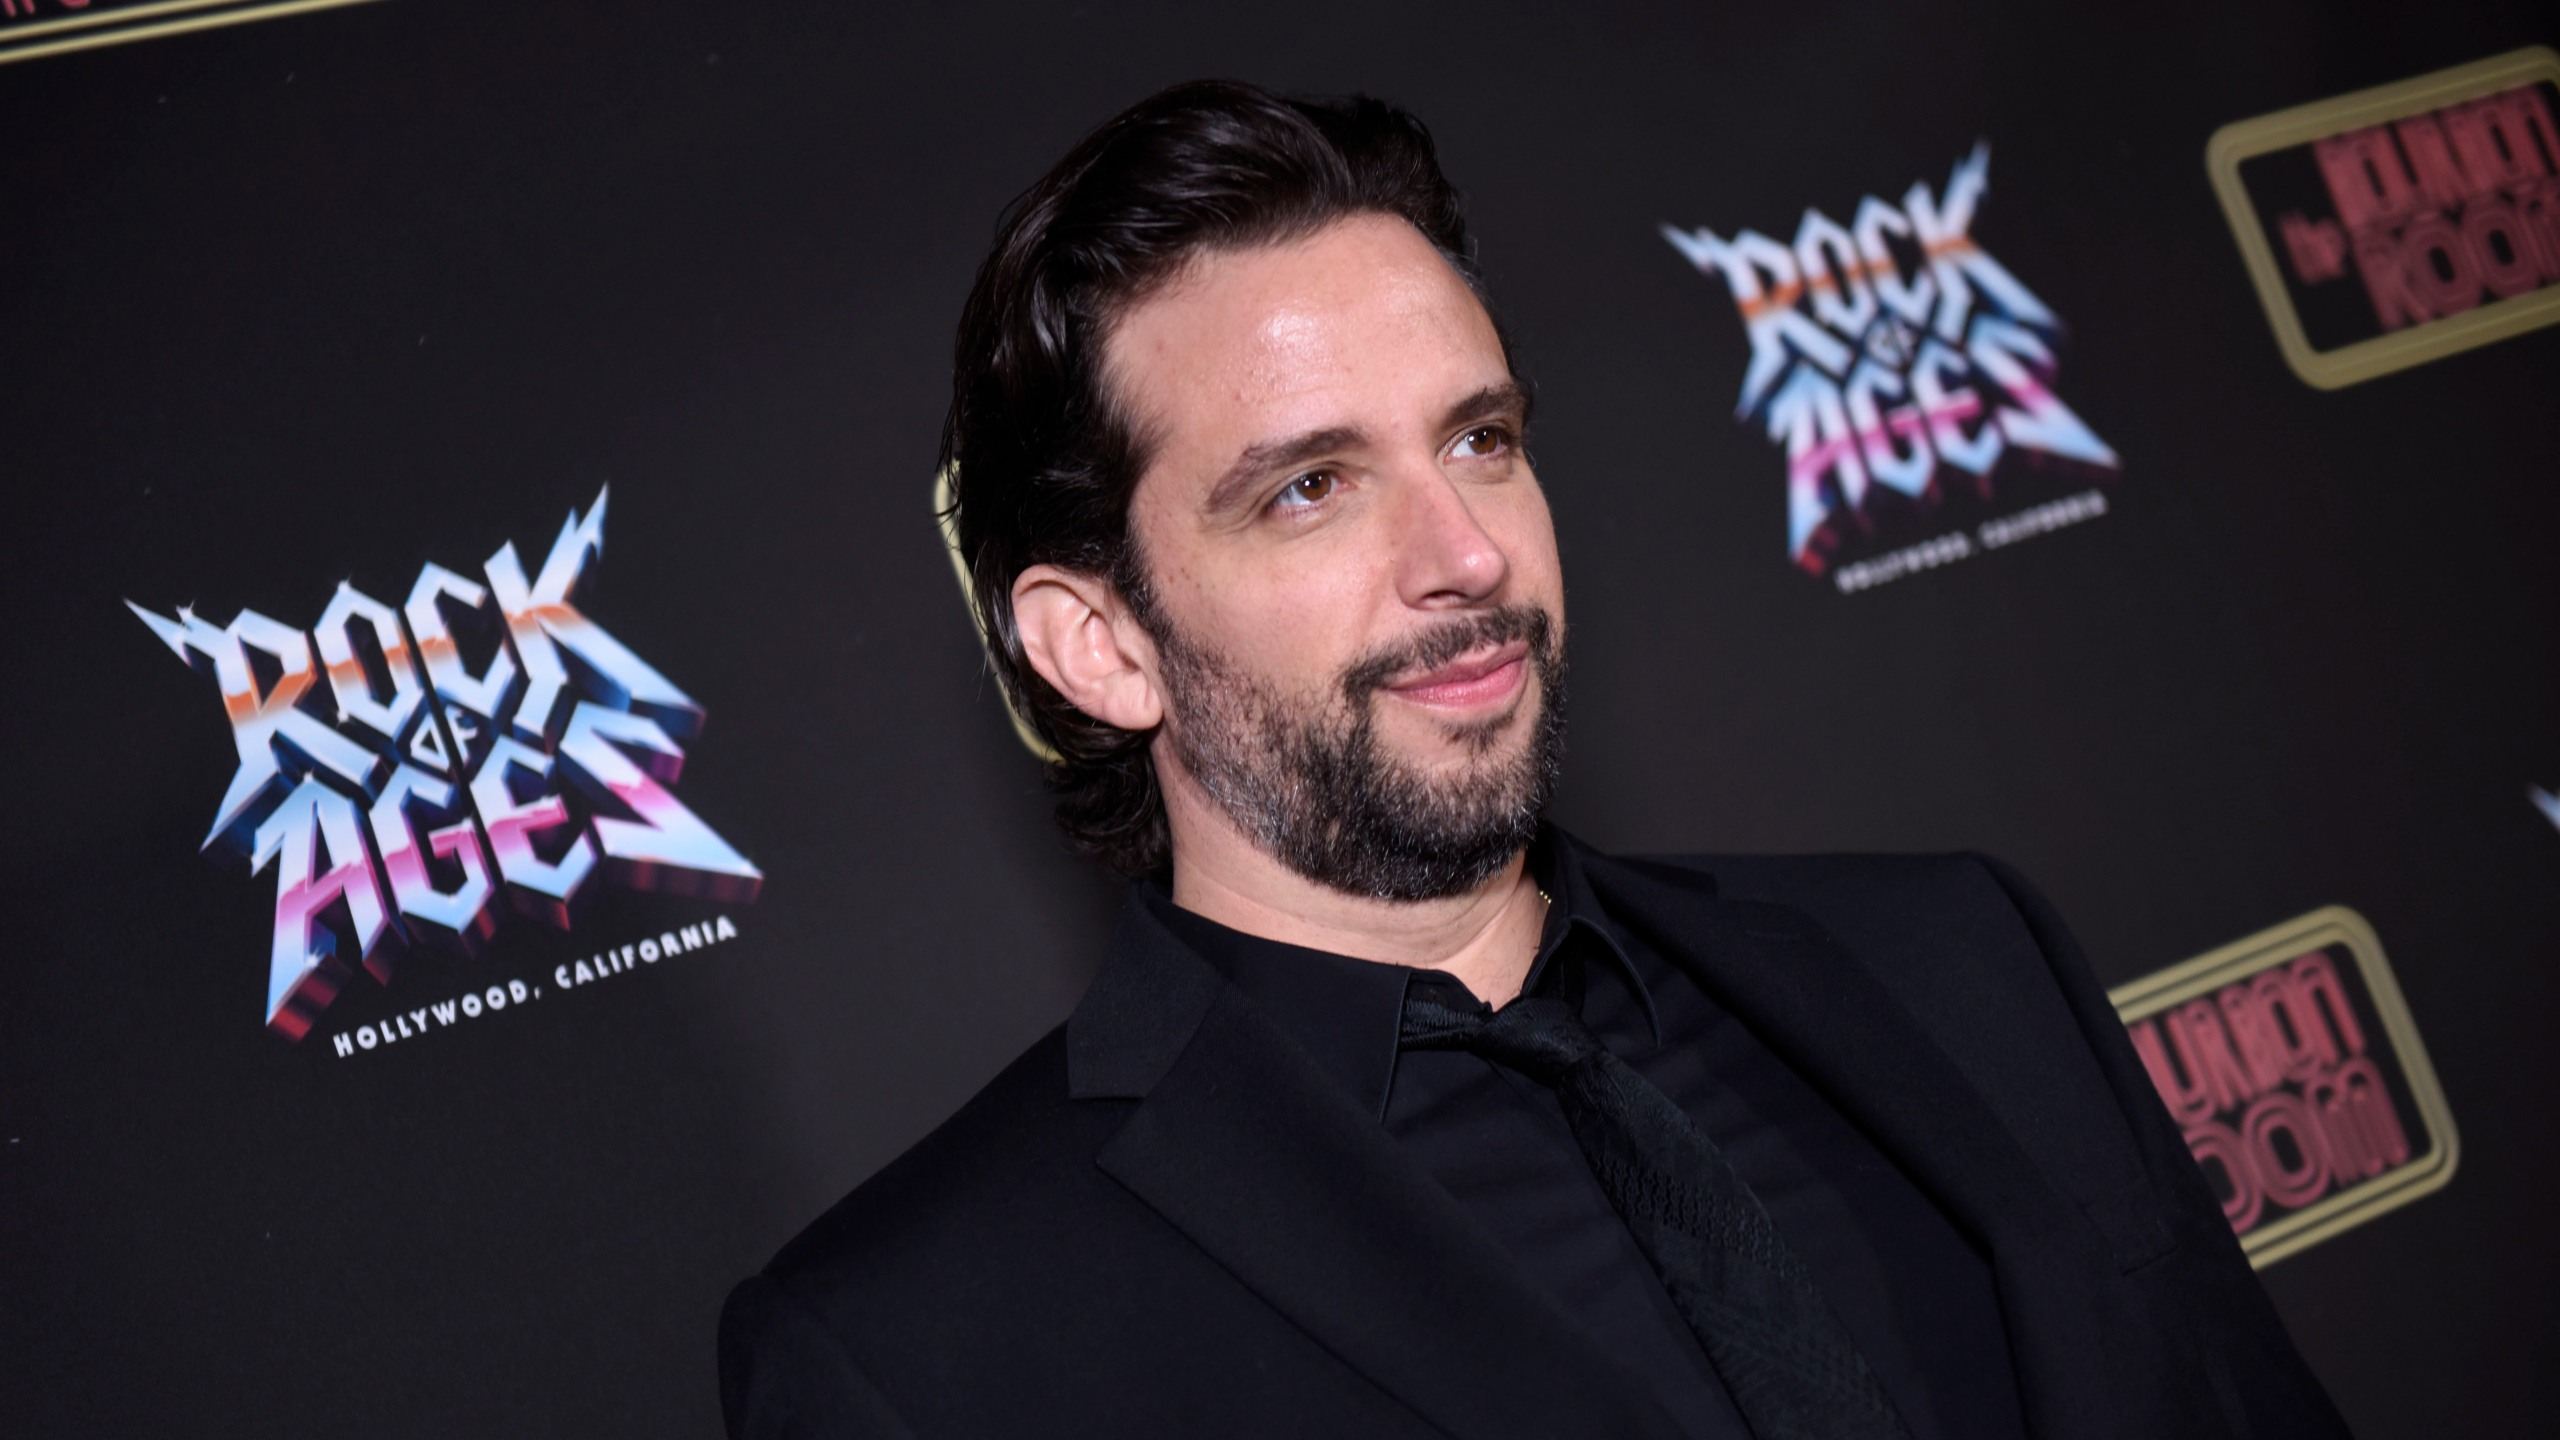 Nick Cordero attends the opening night of Rock of Ages Hollywood at the Bourbon Room on Jan. 15, 2020 in Hollywood. (Vivien Killilea/Getty Images for Rock of Ages Hollywood)